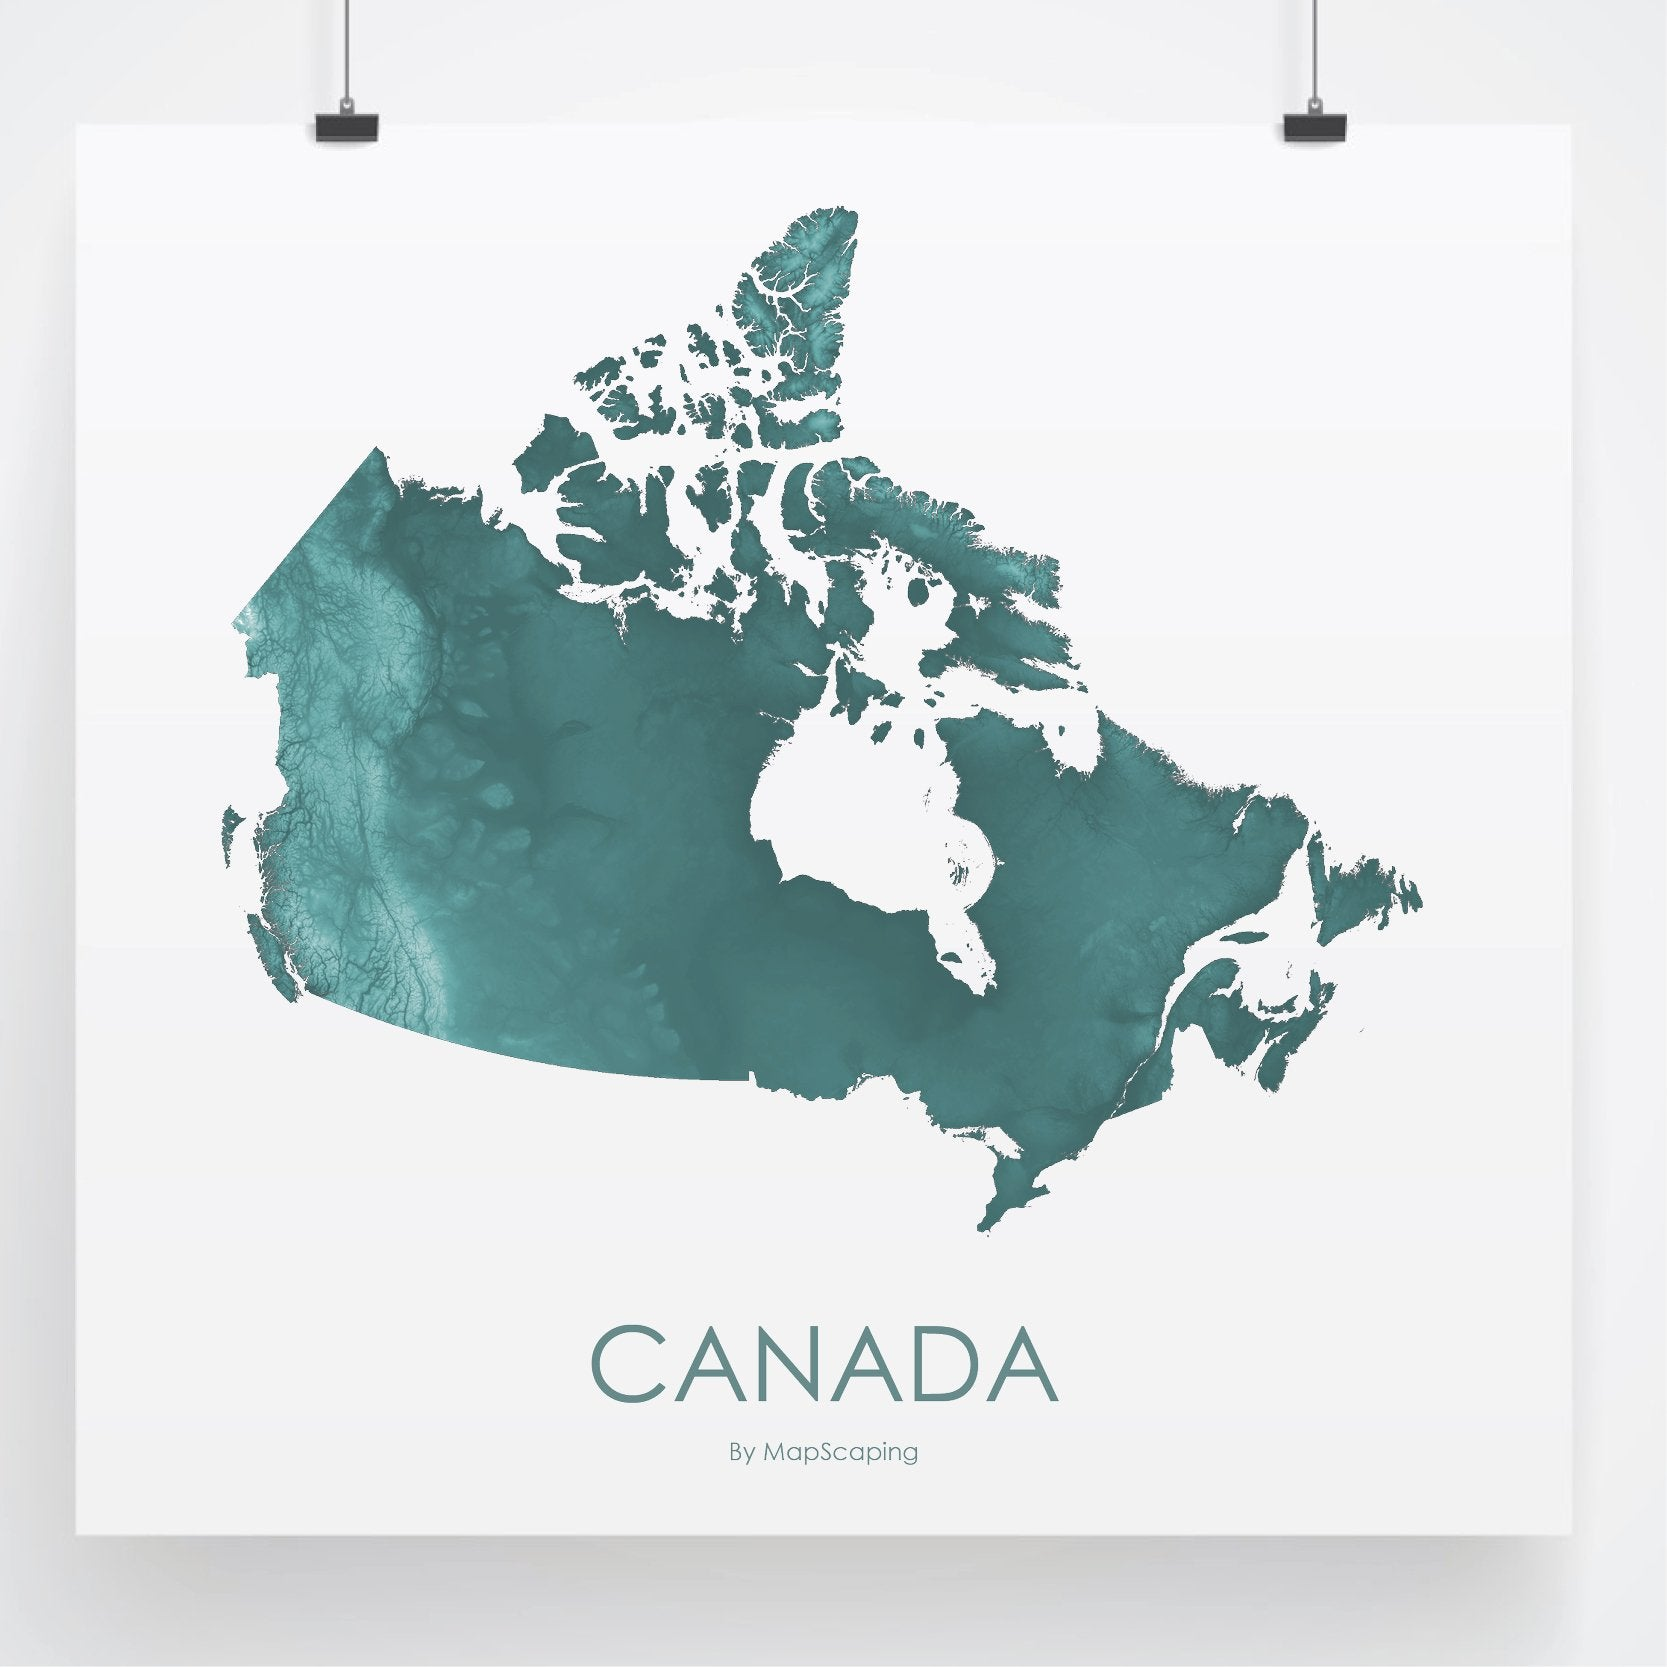 Map Of Canada Jpg.Canada Map Teal